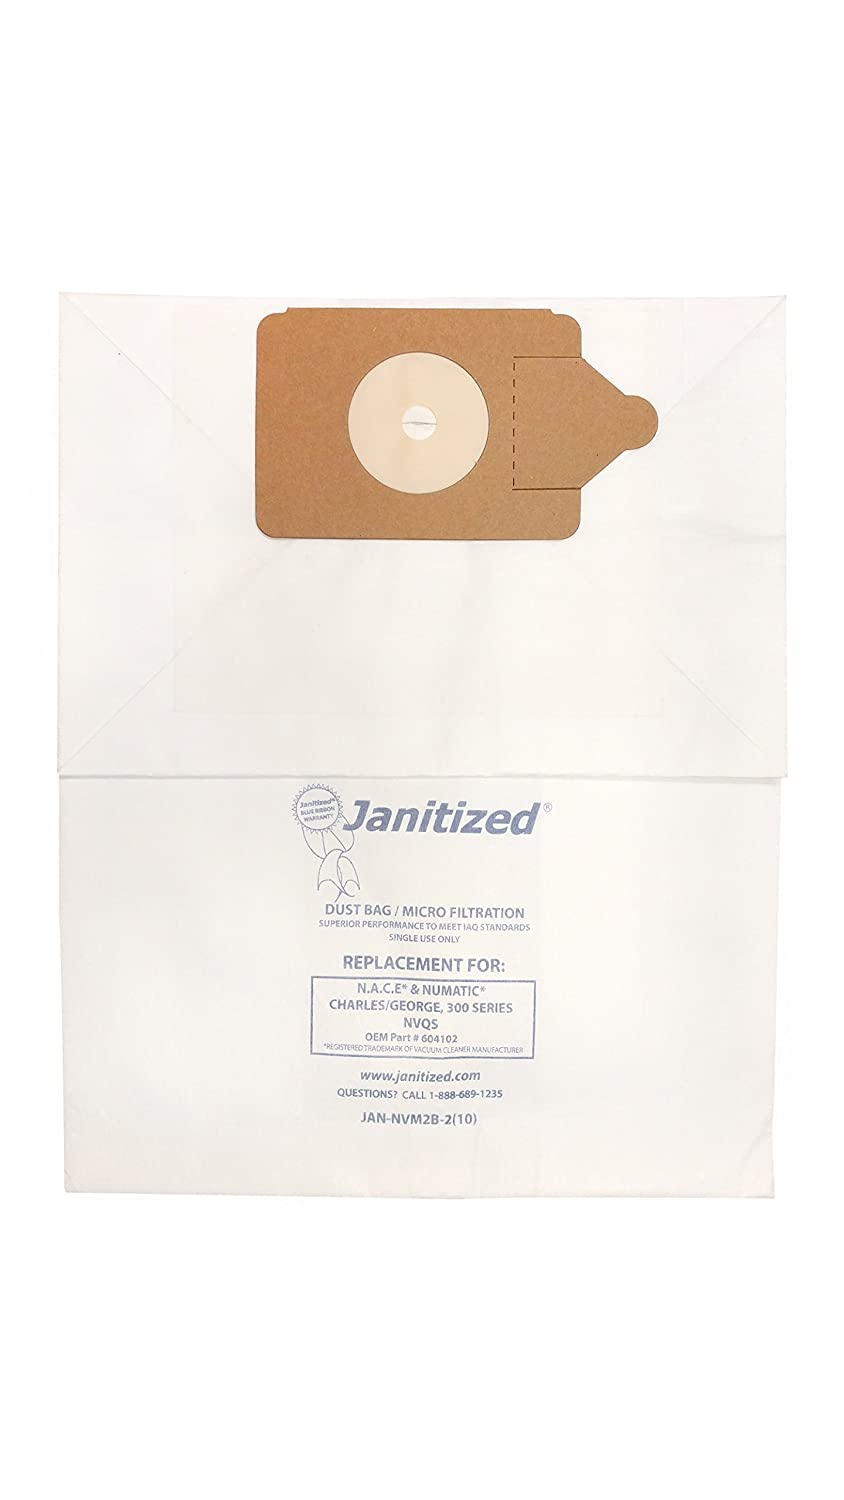 Janitized JAN-NVM2B-2(10) Premium Replacement Commercial Vacuum Paper Bag for Nacecare and Numatic Charles/George, 300 Series, NVQS Vacuum Cleaners, OEM#604102 (Pack of 10)